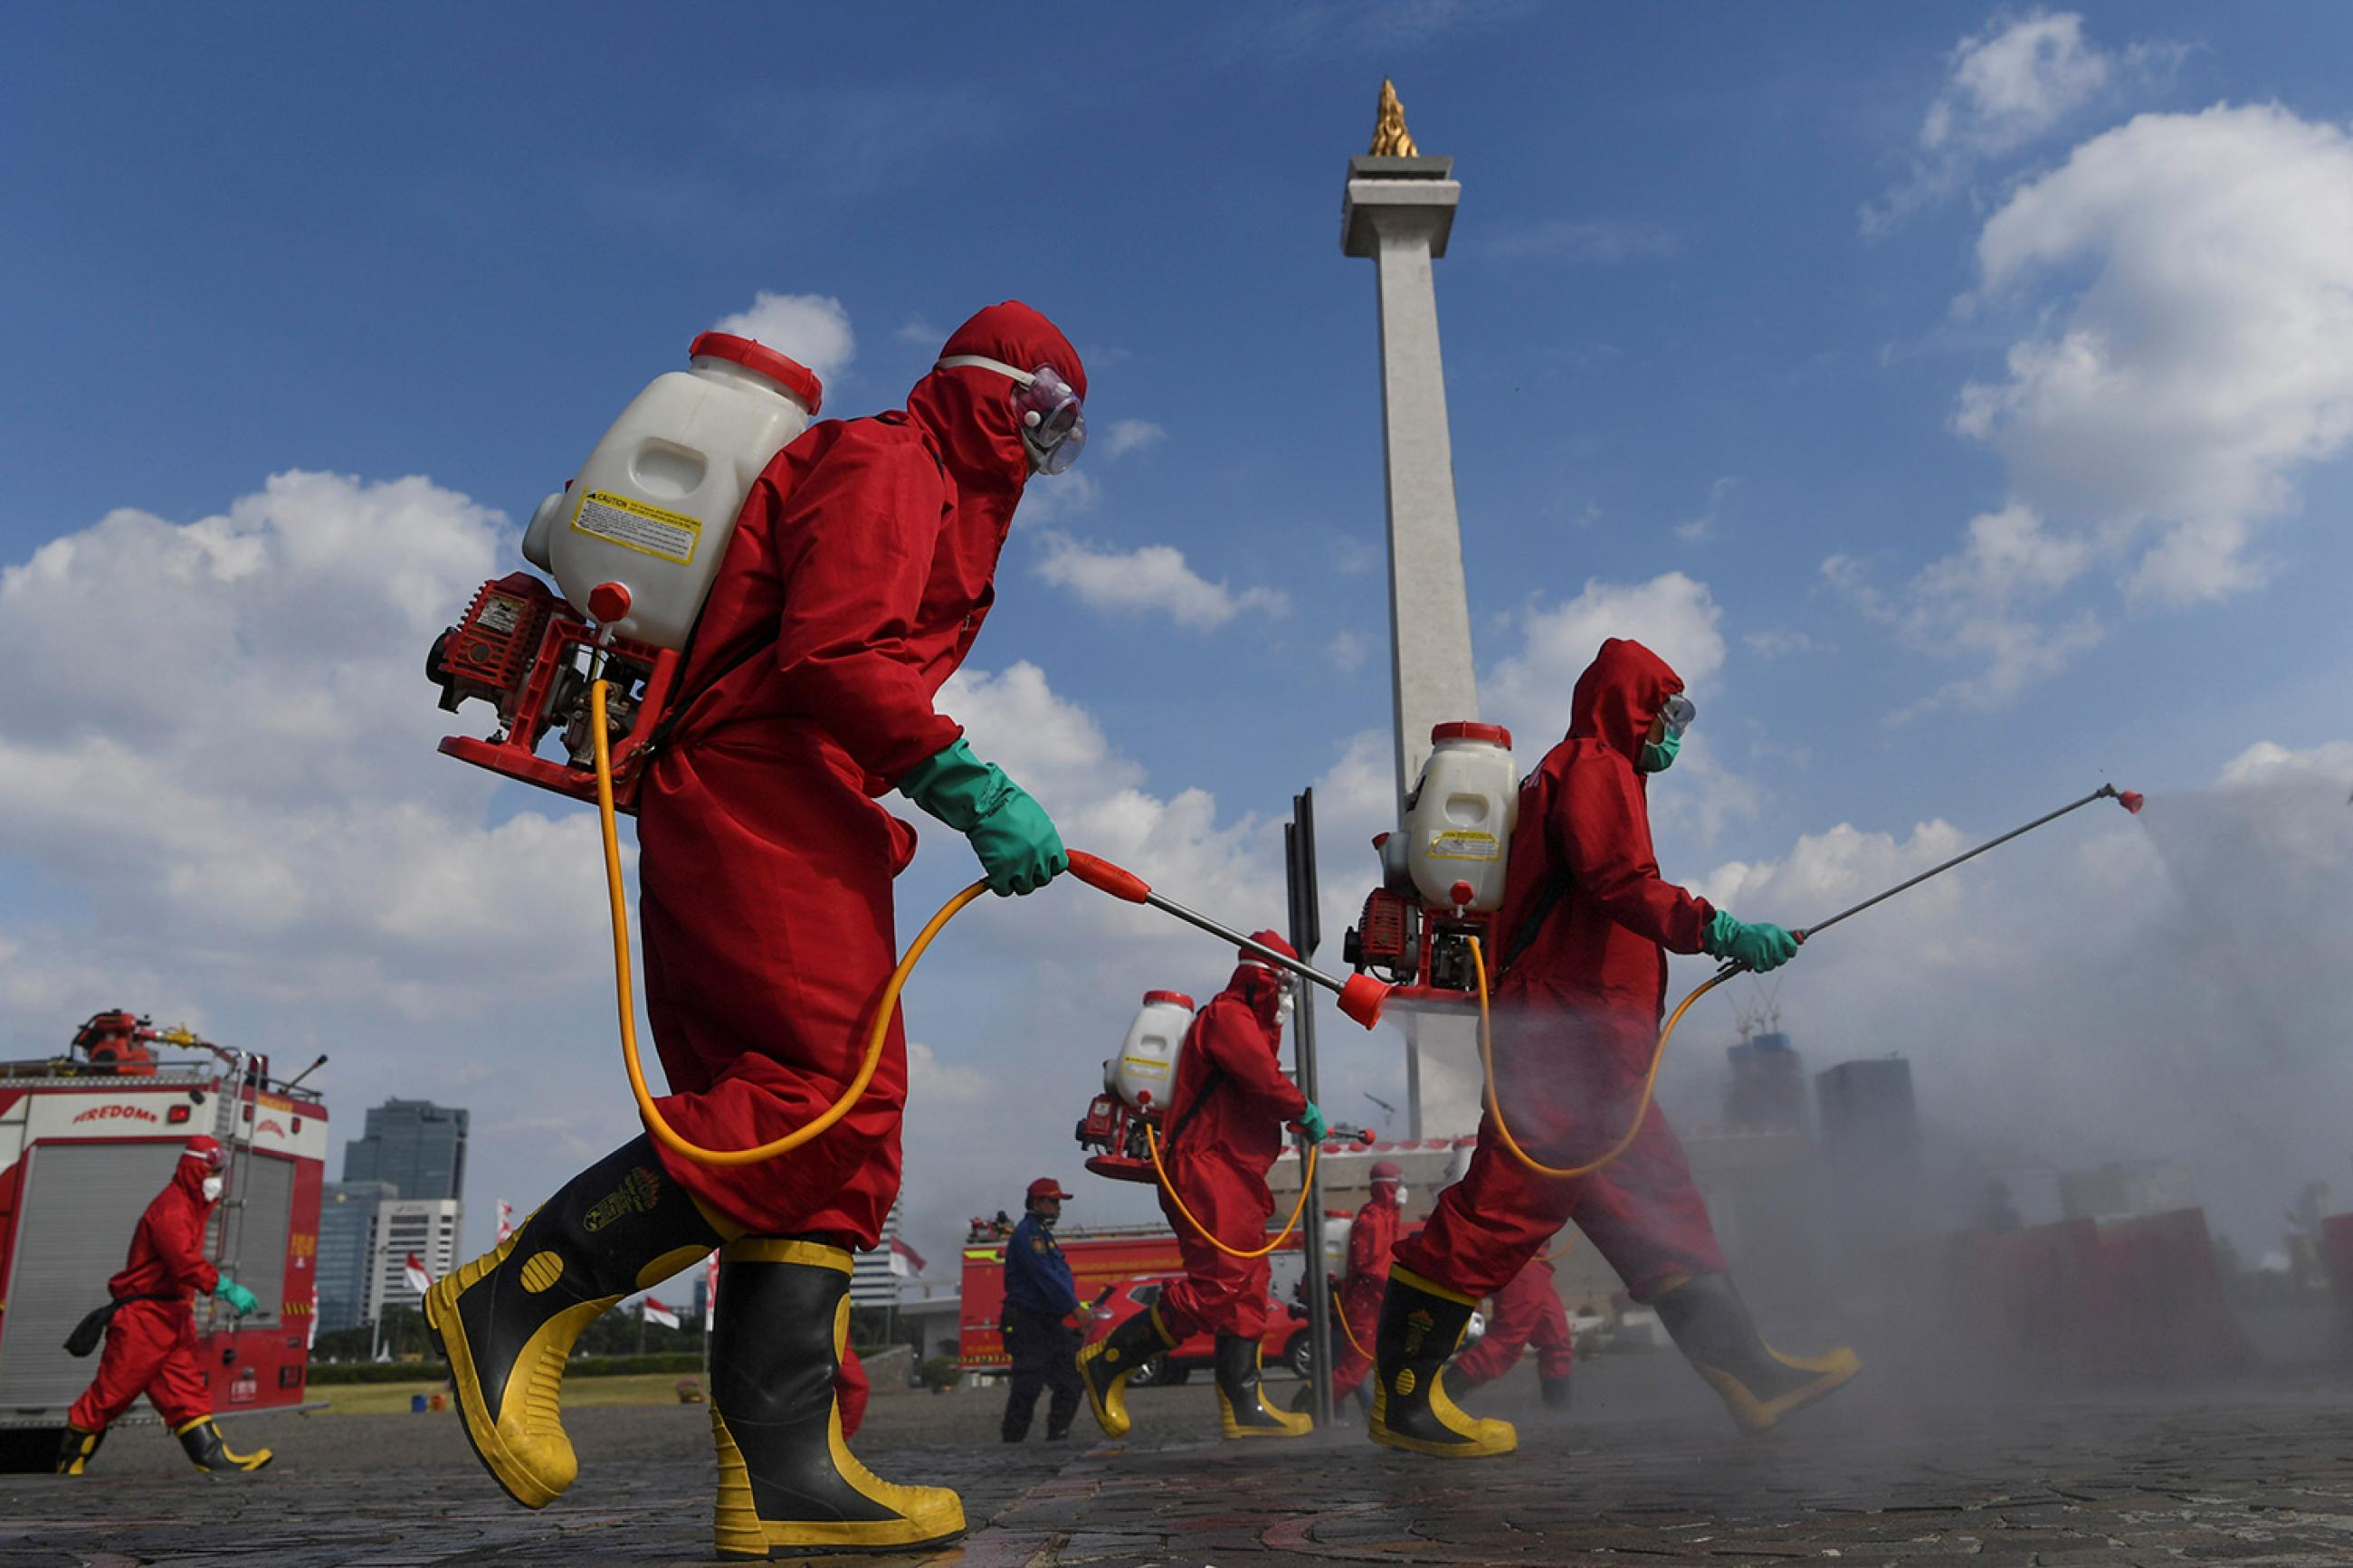 Firefighters wearing protective suits spray disinfectant at the National Monument area to prevent the spread of the coronavirus disease (COVID-19) in Jakarta, Indonesia, on June 17, 2020. Photo shows several workers in bright red protective suits walking though an open area spraying from tanks they carry on their backs. A monument can be seen in the background. REUTERS/Antara Foto/Wahyu Putro